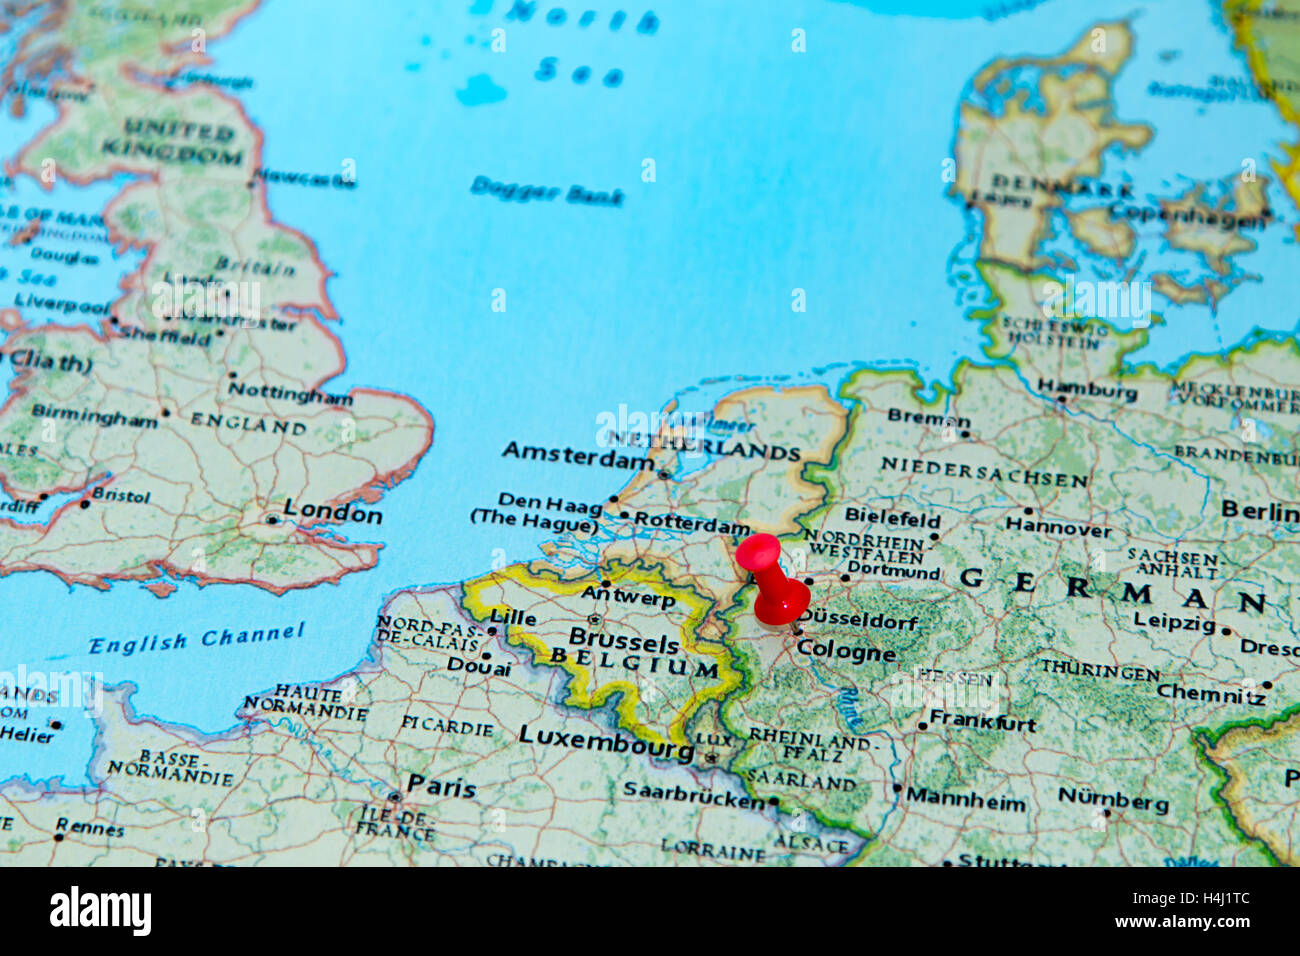 Cologne Germany Pinned On A Map Of Europe Stock Photo Royalty - Map of koln germany